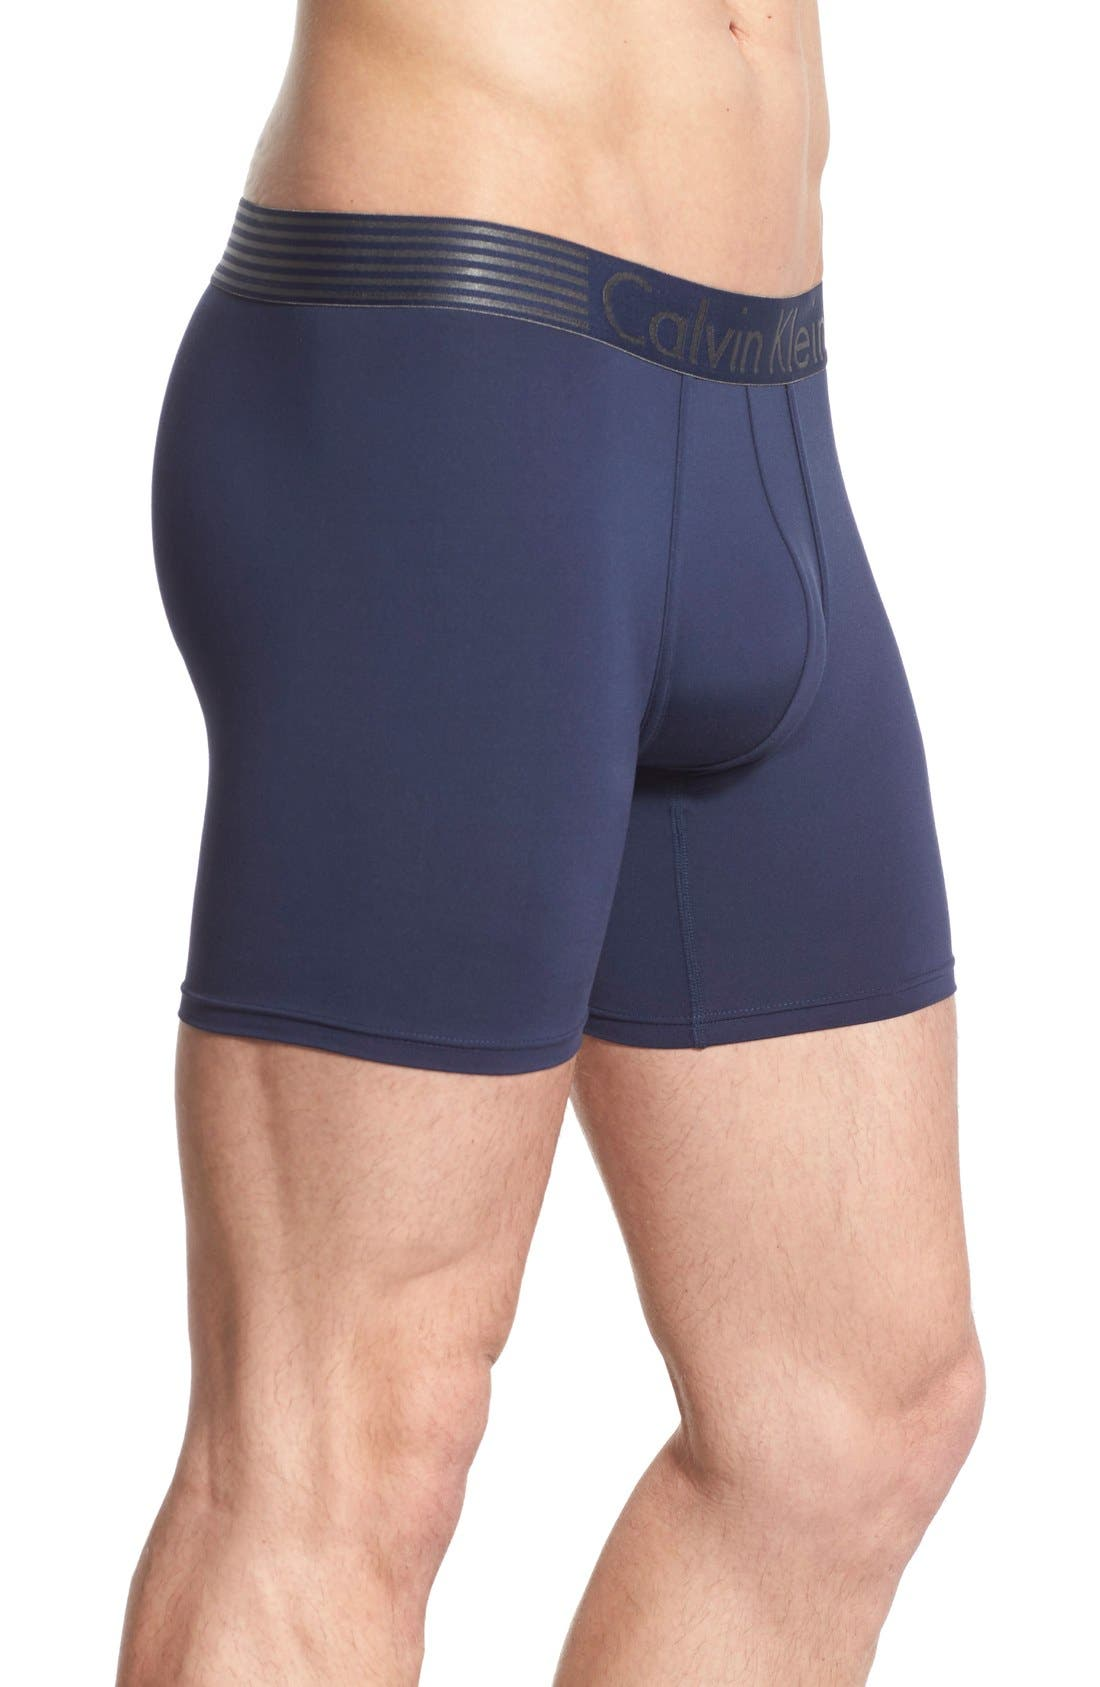 Iron Strength Boxer Briefs,                             Alternate thumbnail 3, color,                             400